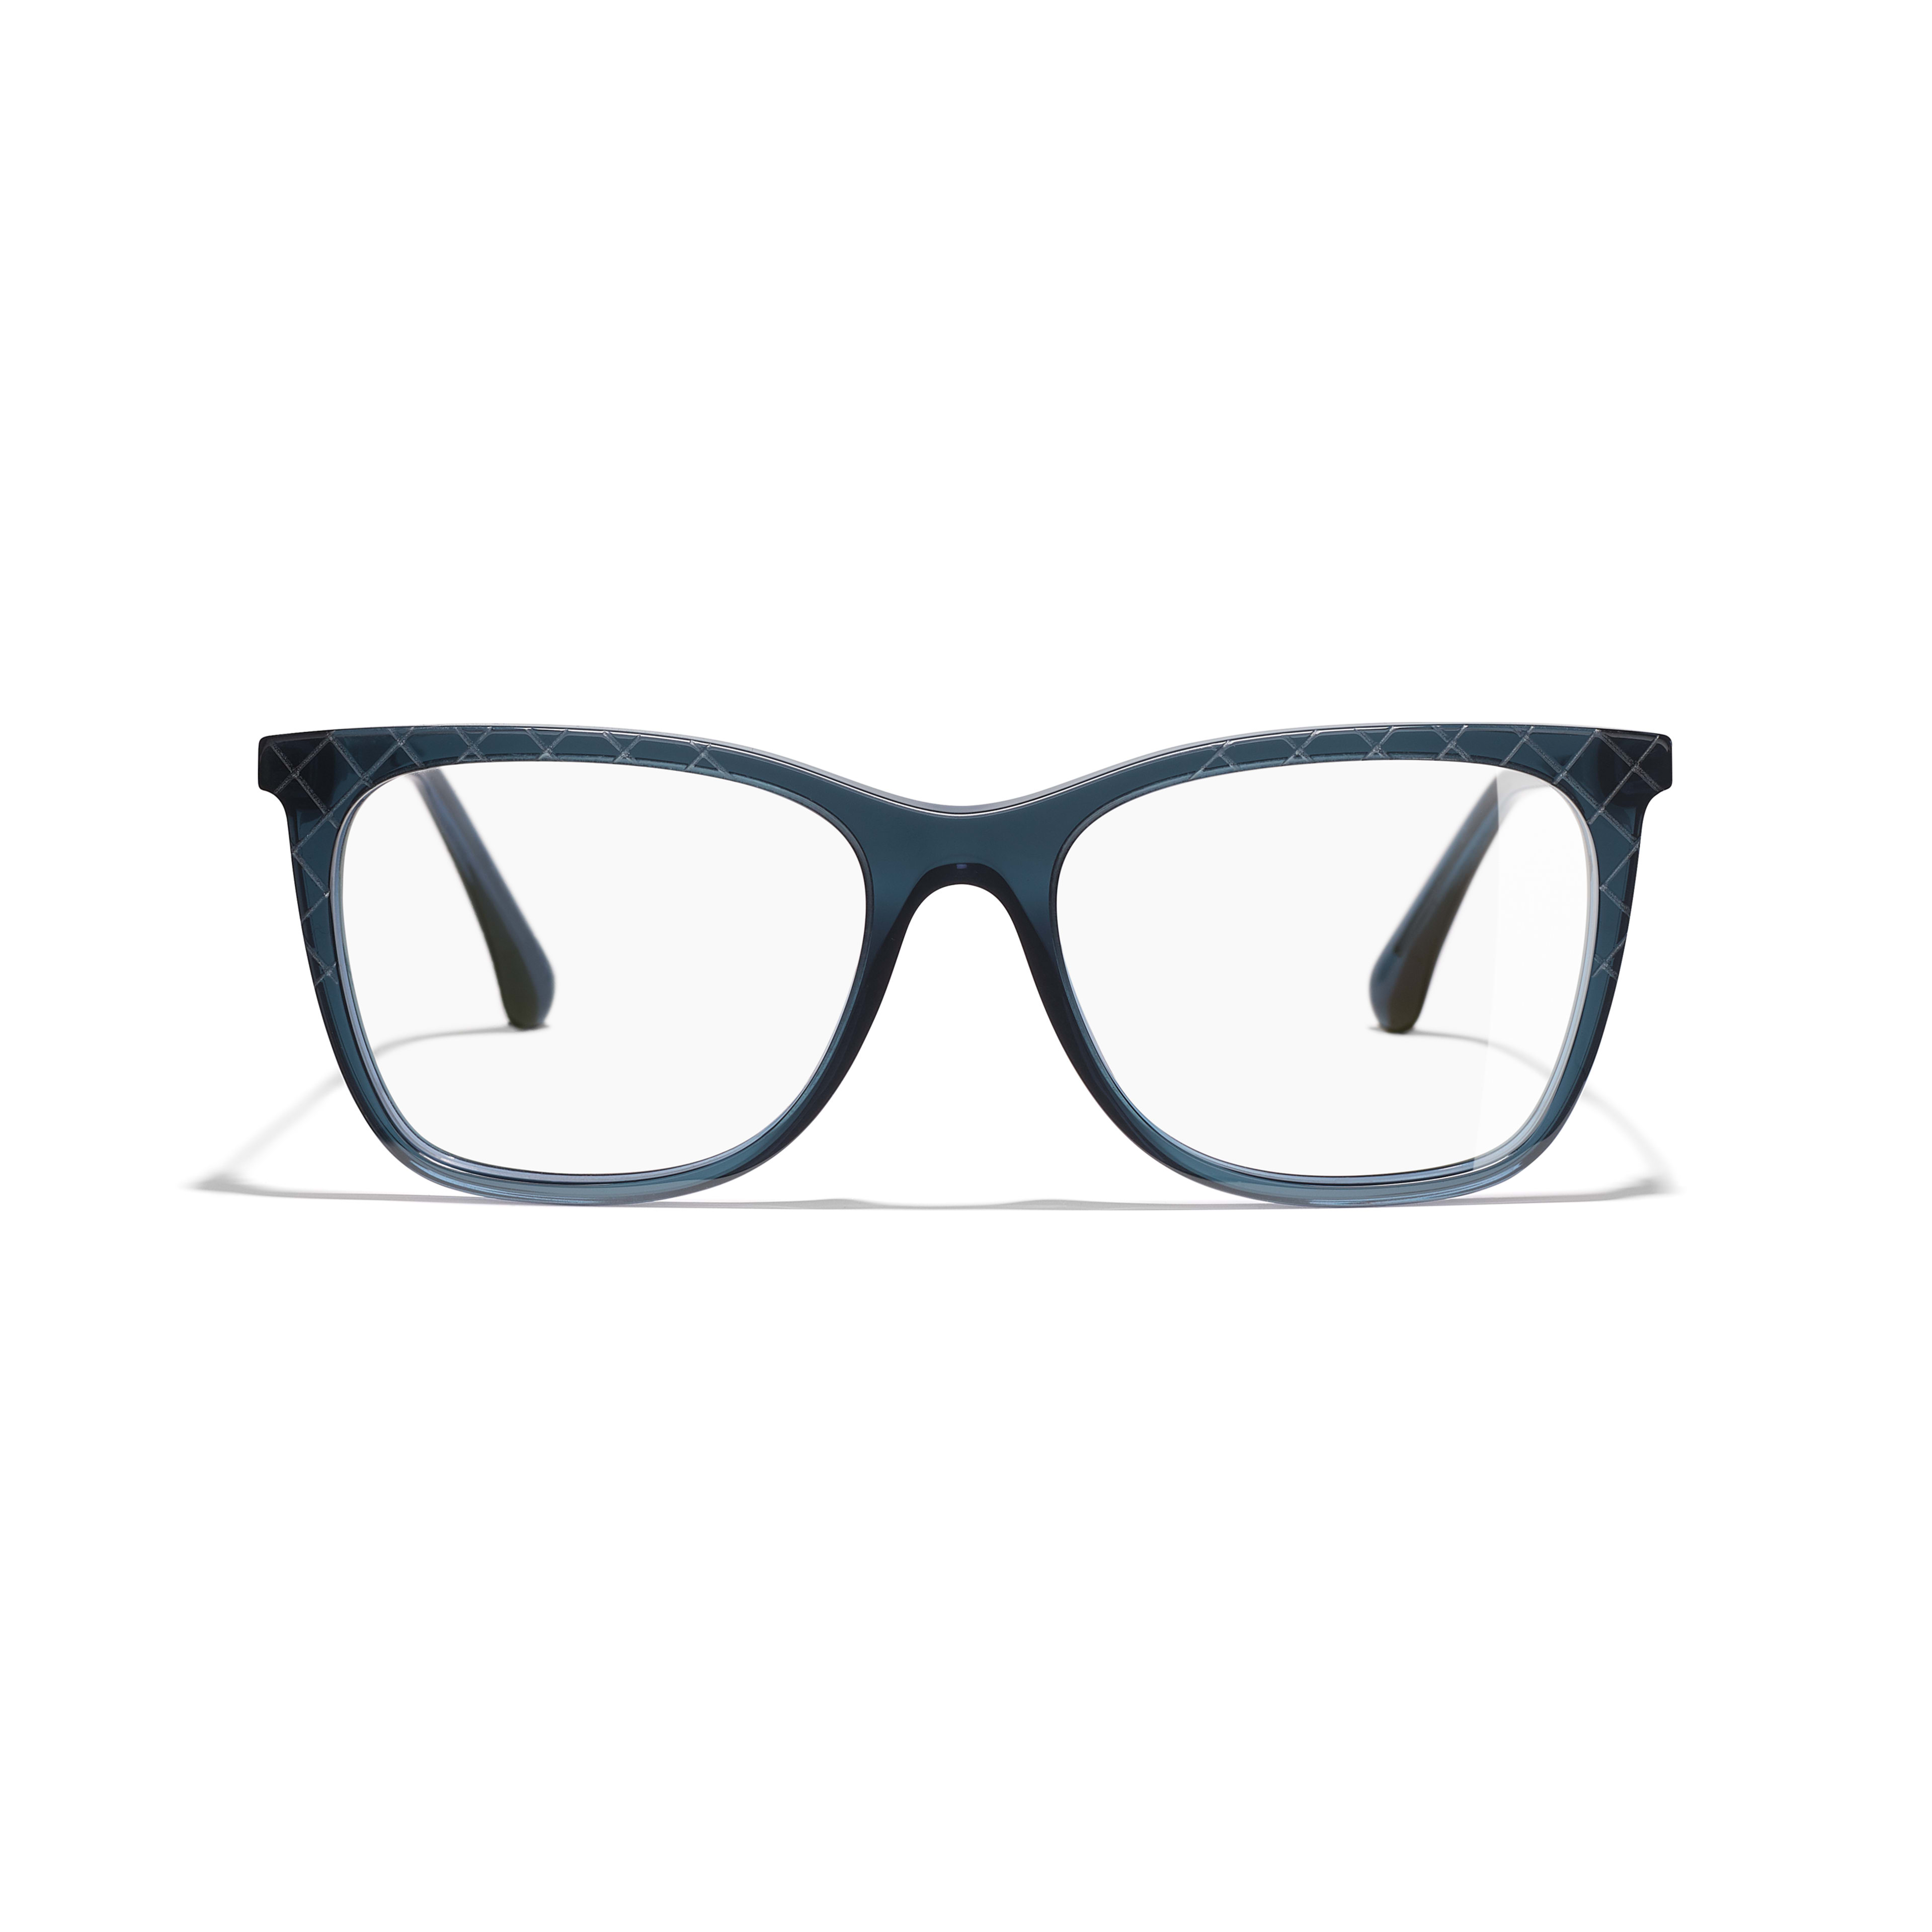 Rectangle Eyeglasses - Blue - Acetate & Metal - Alternative view - see full sized version